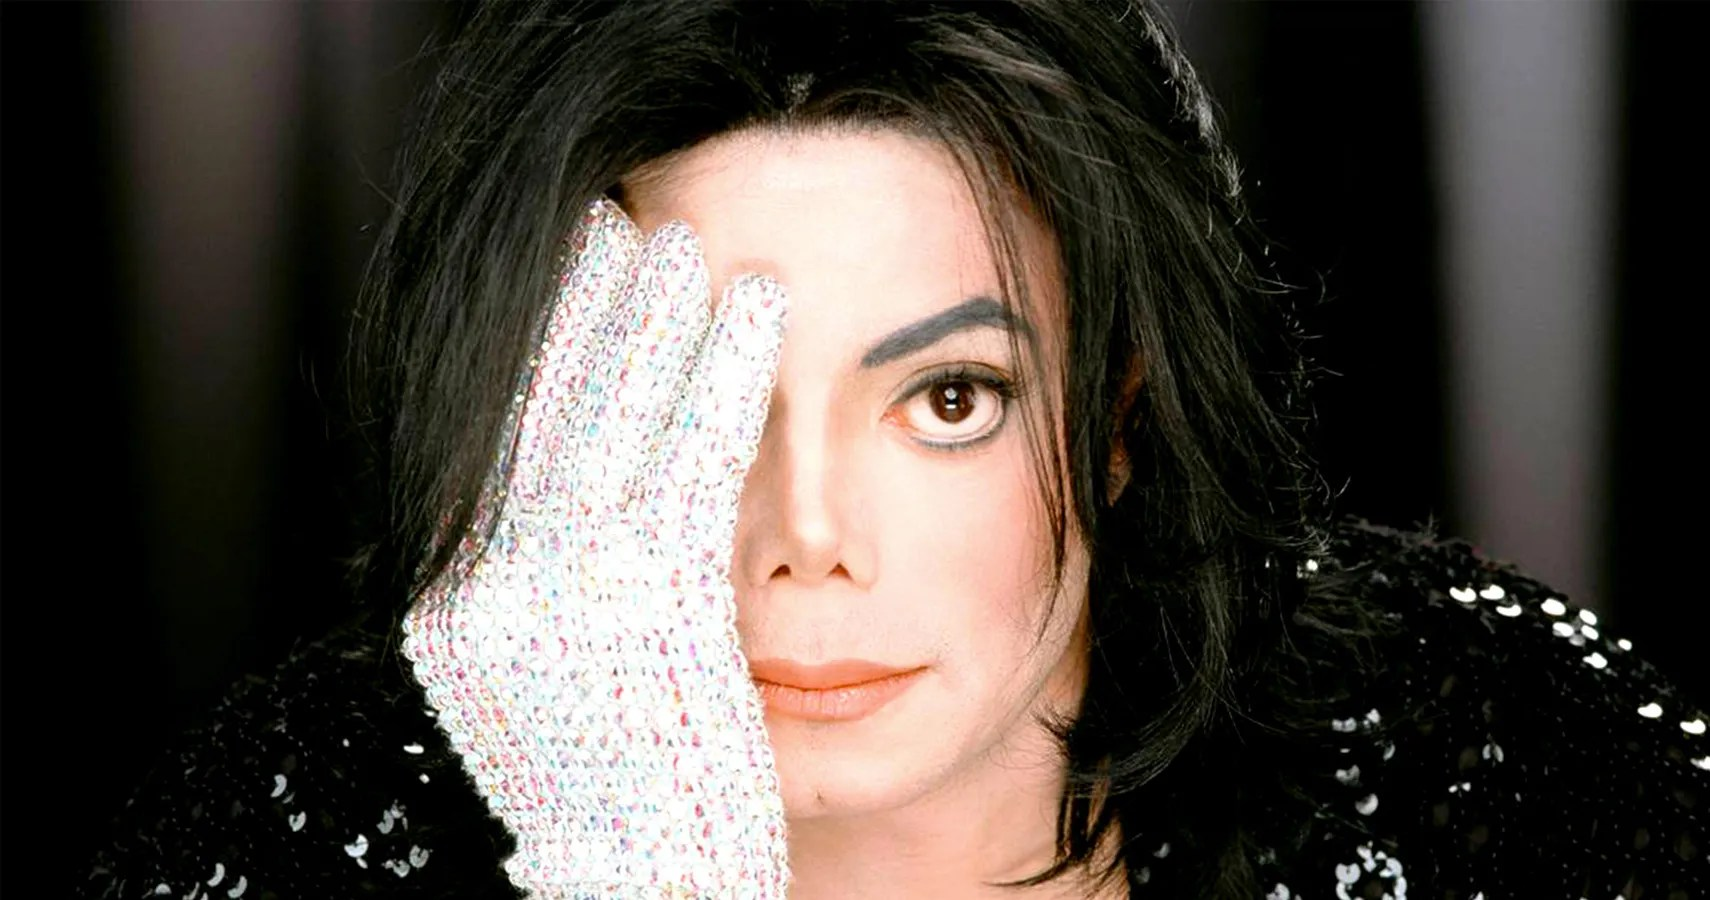 Sony Under Fire For Releasing Possibly Fake Michael Jackson